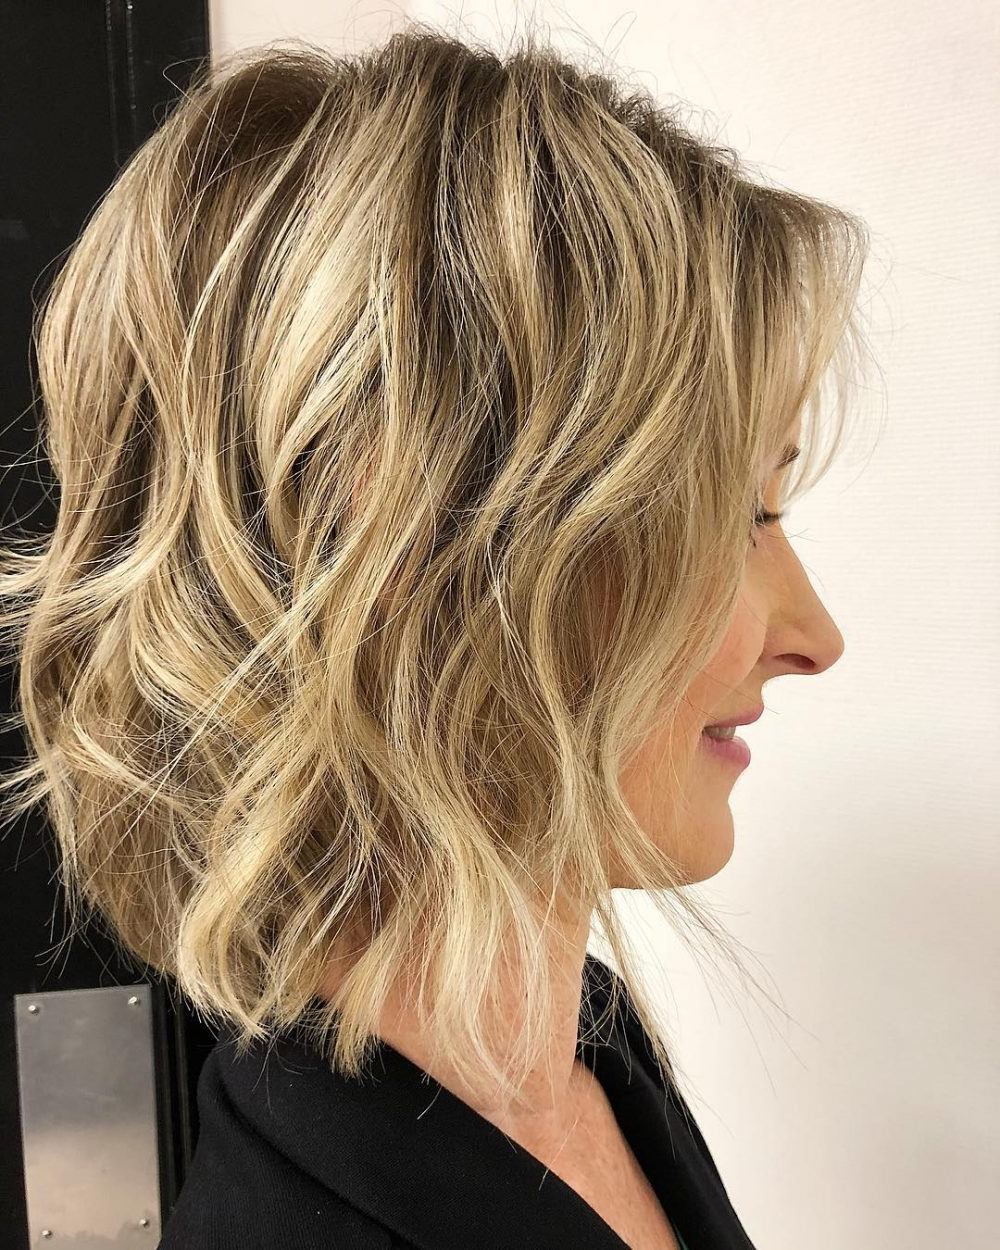 43 Perfect Short Hairstyles For Fine Hair In 2018 With Short Haircuts For Thin Wavy Hair (View 10 of 25)